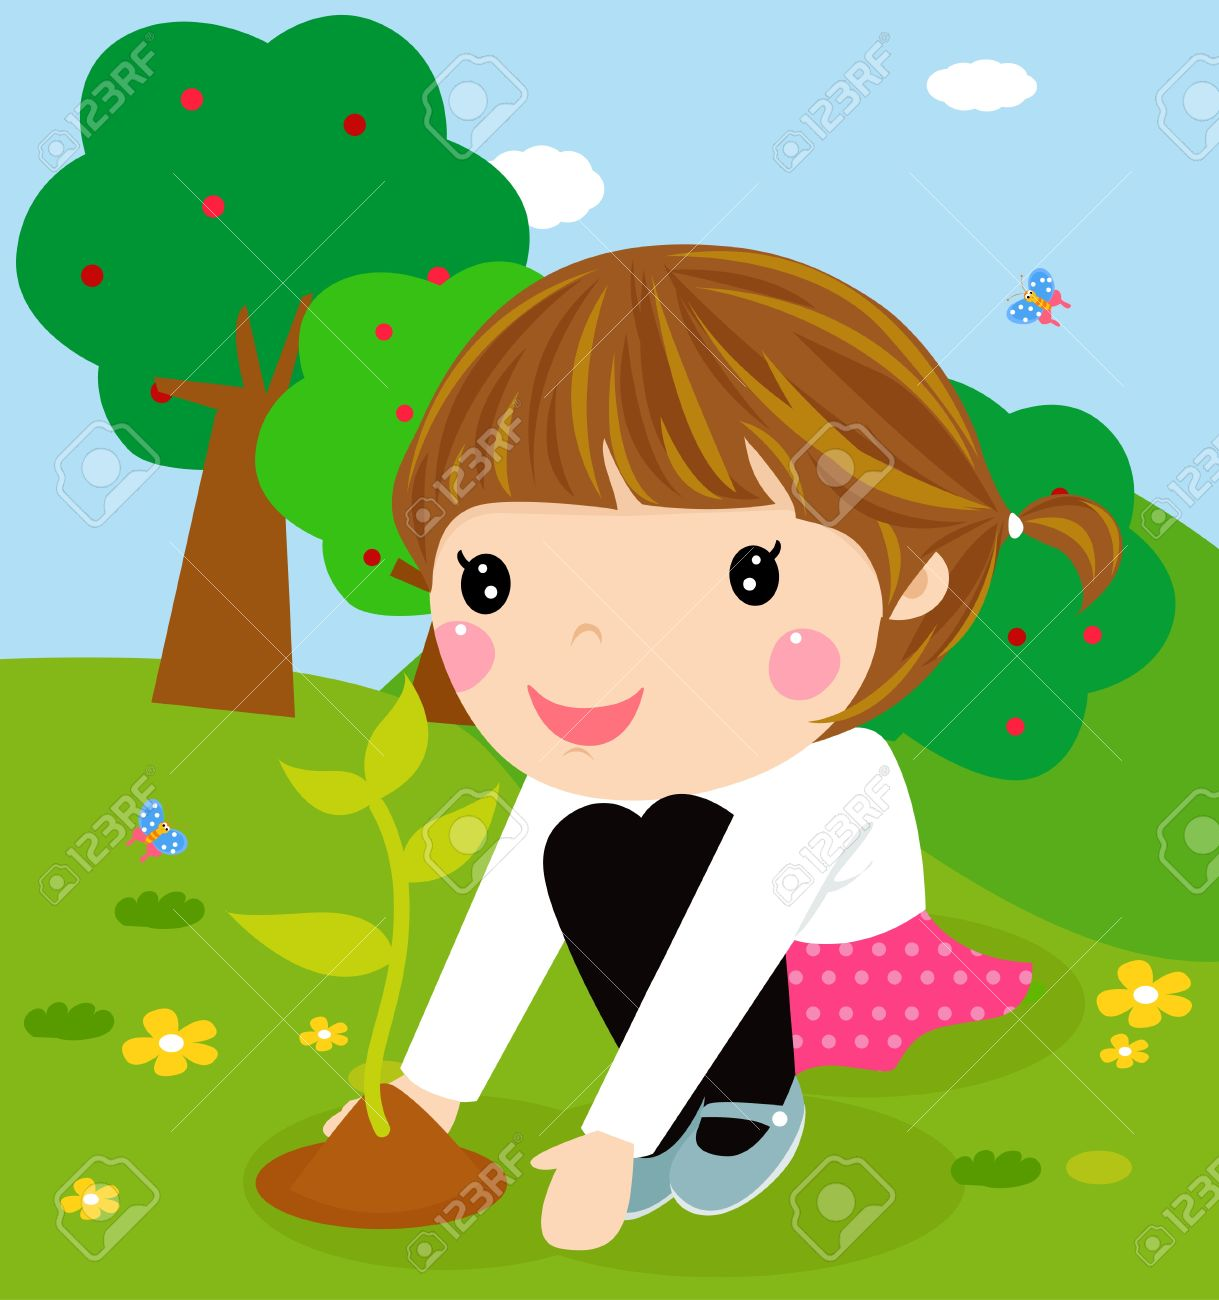 Playing garden drawing for kids - Summer Garden Happy Kid Is Planting Small Plant Cartoon Illustration